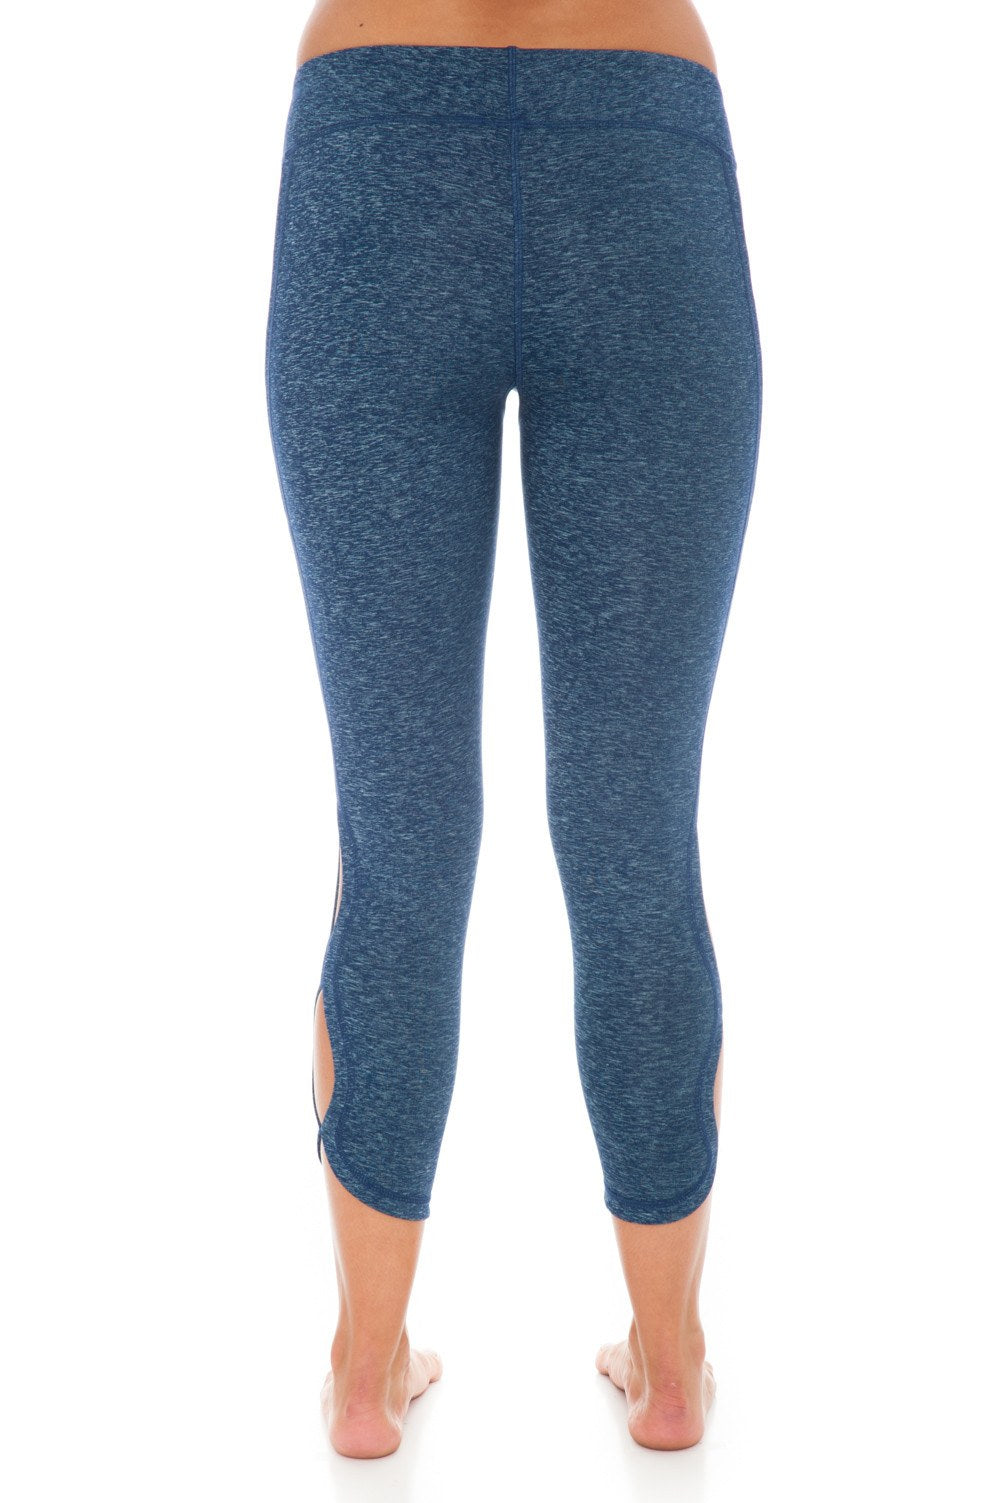 Legging - Crop Leg With Detail - 6